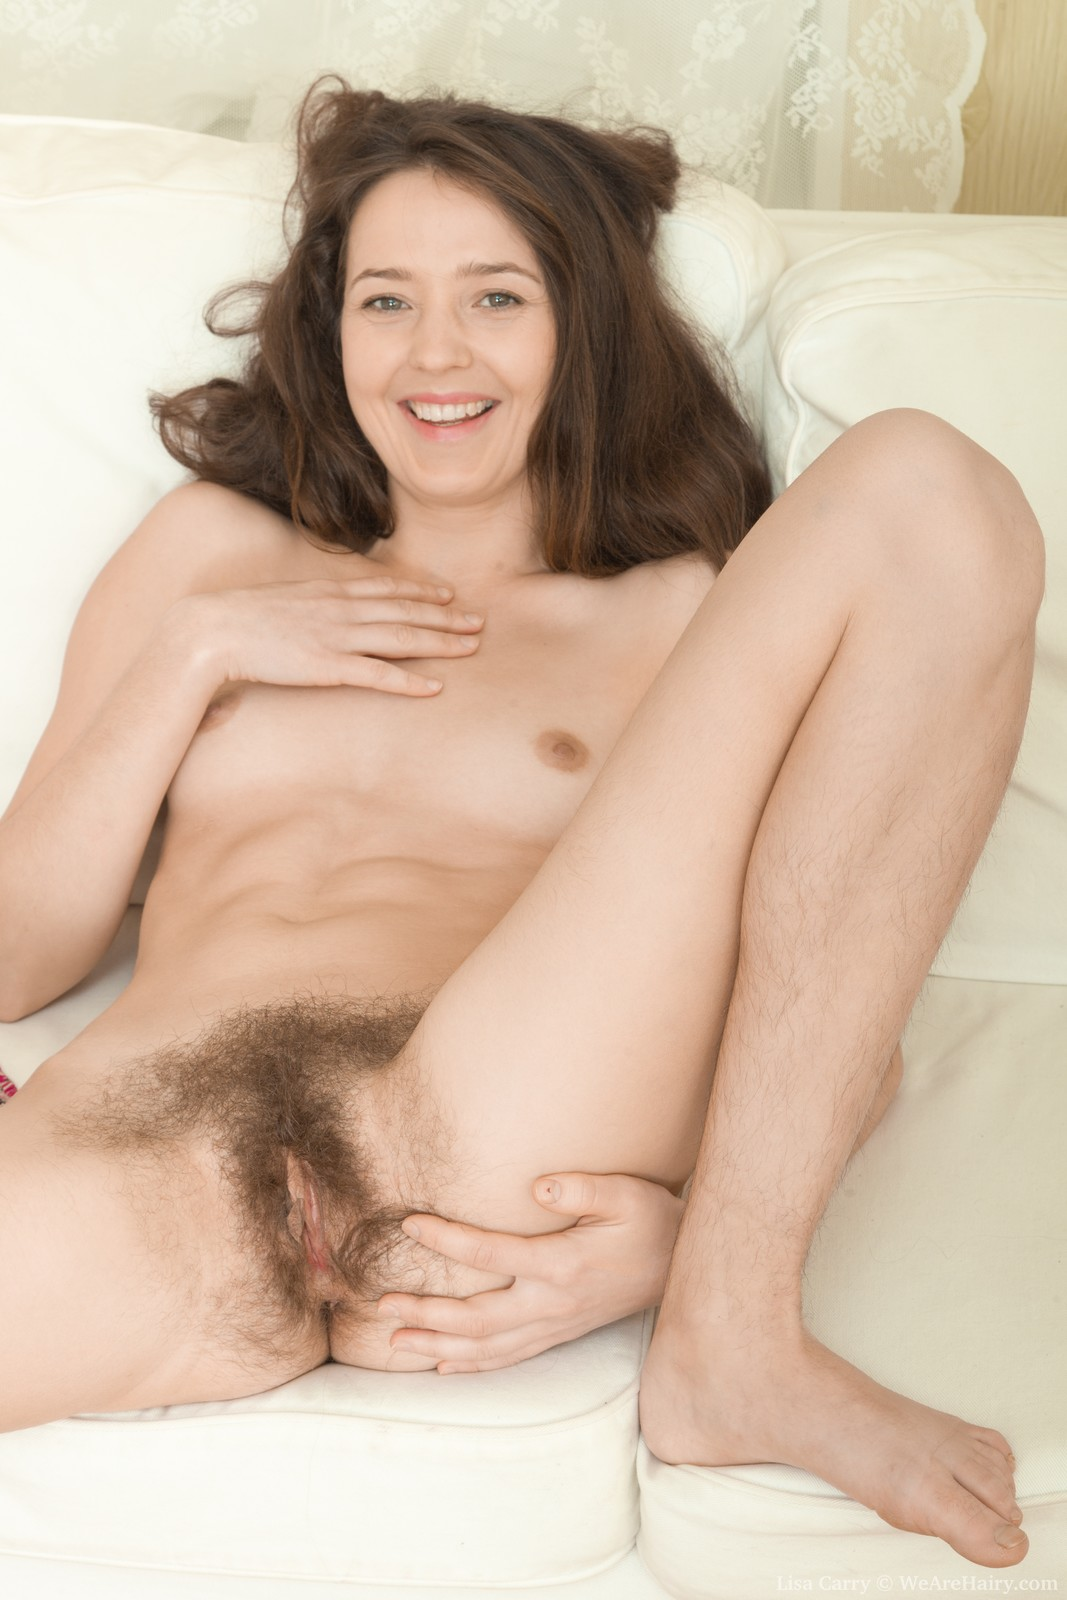 Hairy arab girls nude